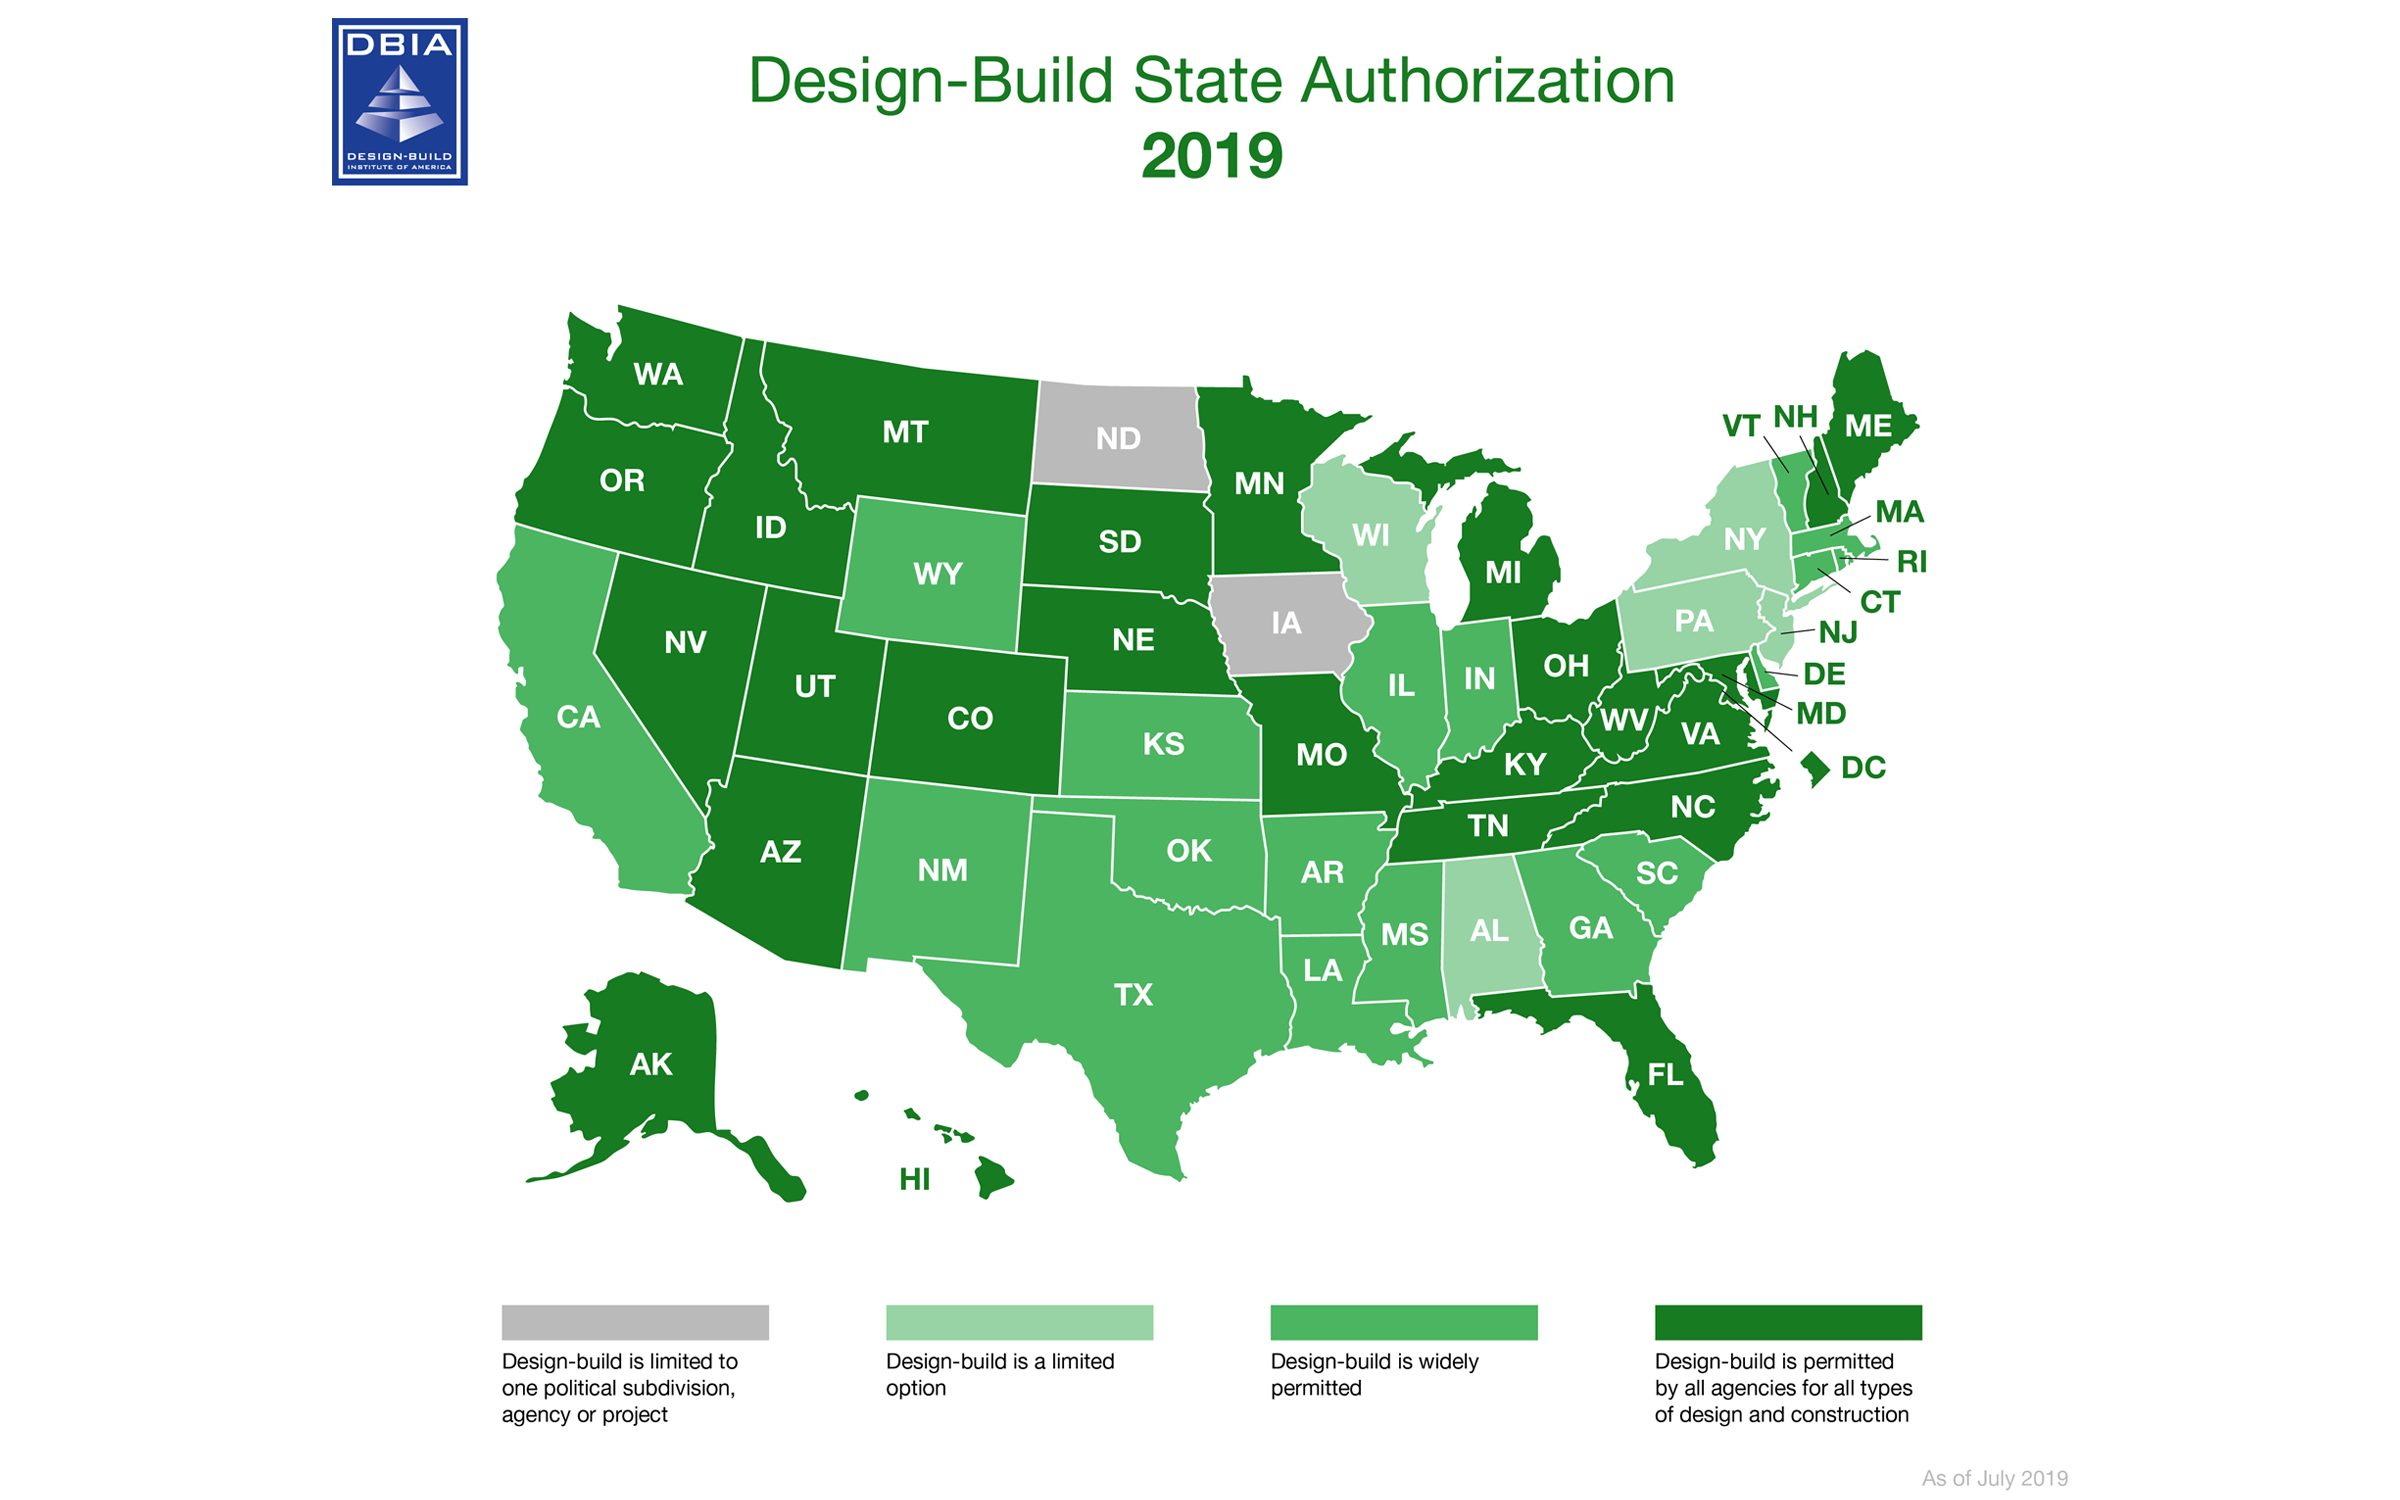 Design-Build State Authorization Map 2019